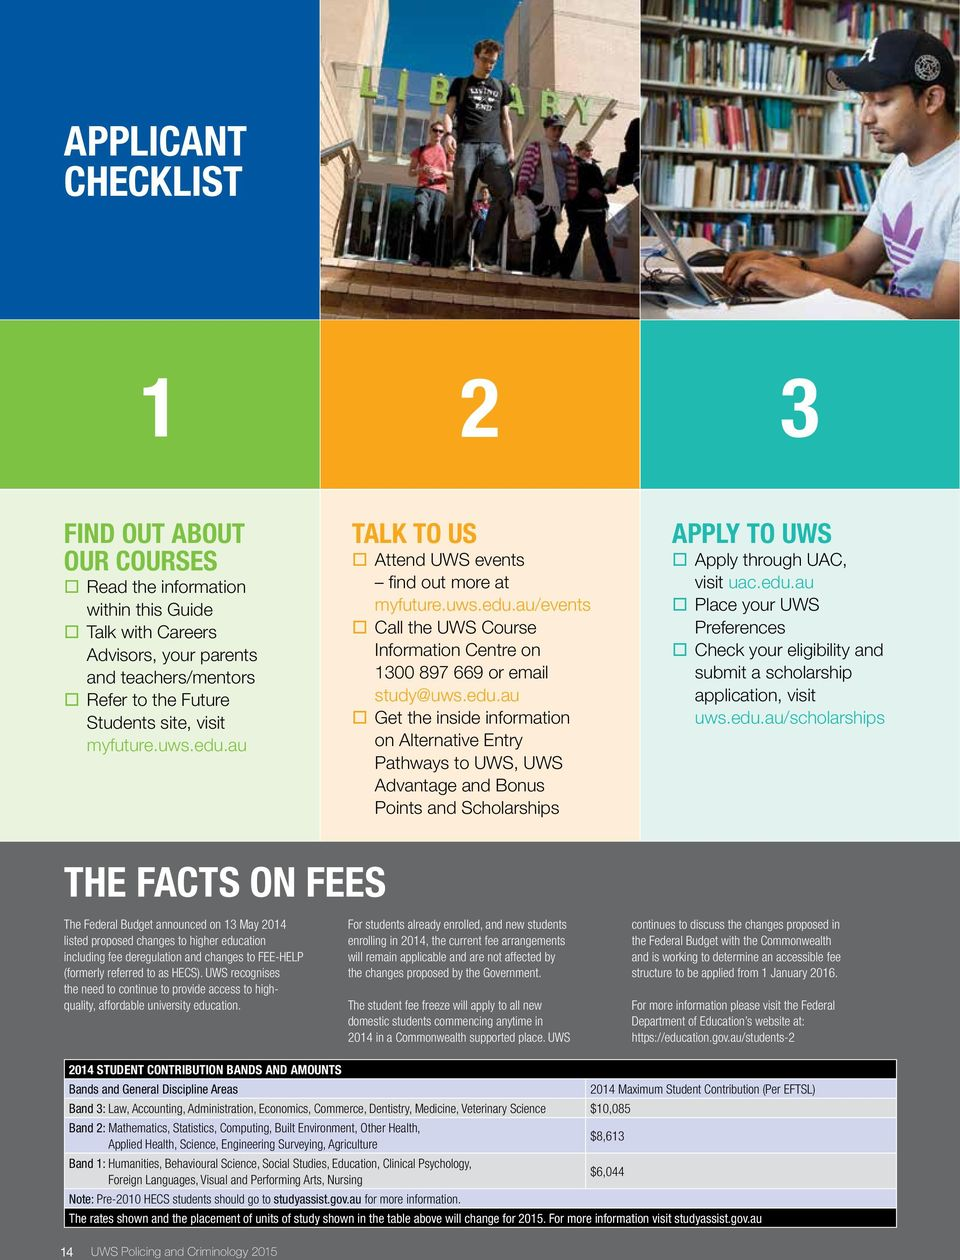 edu.au Place your UWS Preferences Check your eligibility and submit a scholarship application, visit uws.edu.au/scholarships THE FACTS ON FEES The Federal Budget announced on 13 May 2014 listed